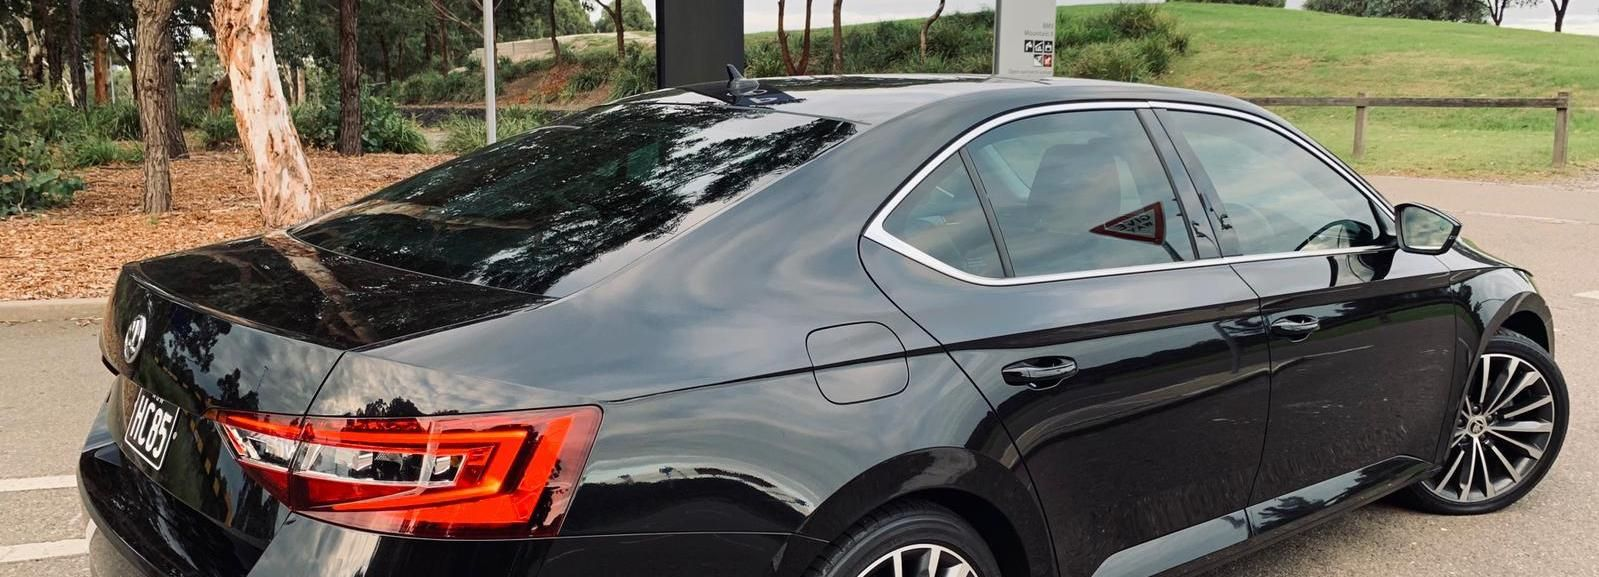 Sydney: Premium Airport Transfer with Meet and Greet